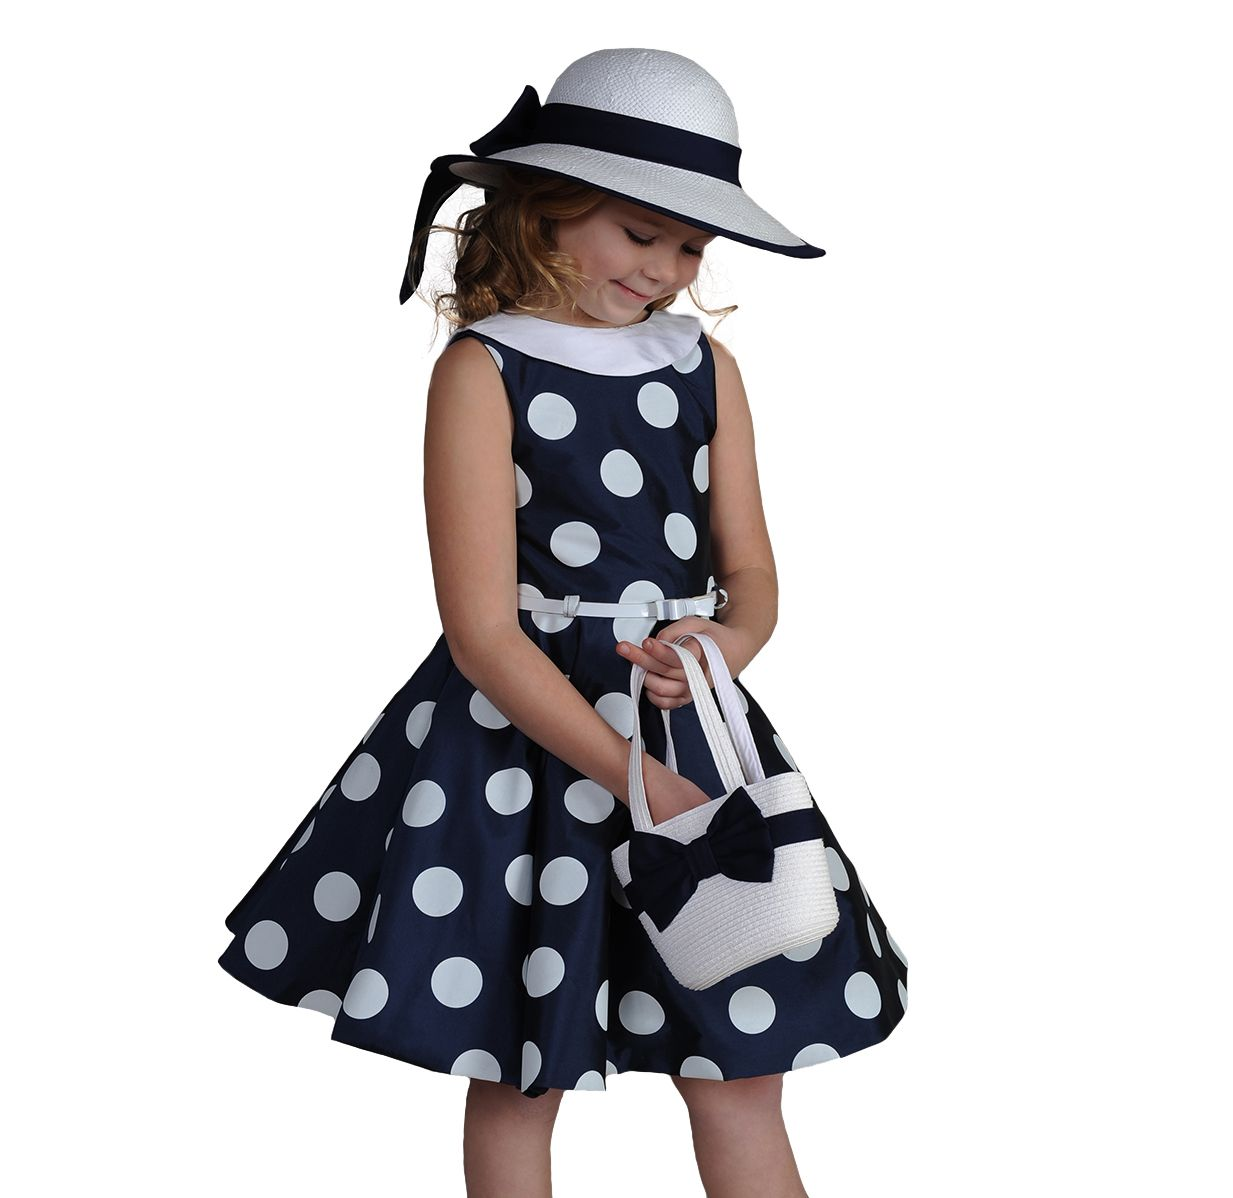 Kids Audrey Vintage Polka Dot 50s Girls Swing Dress for Wedding Pageant Party